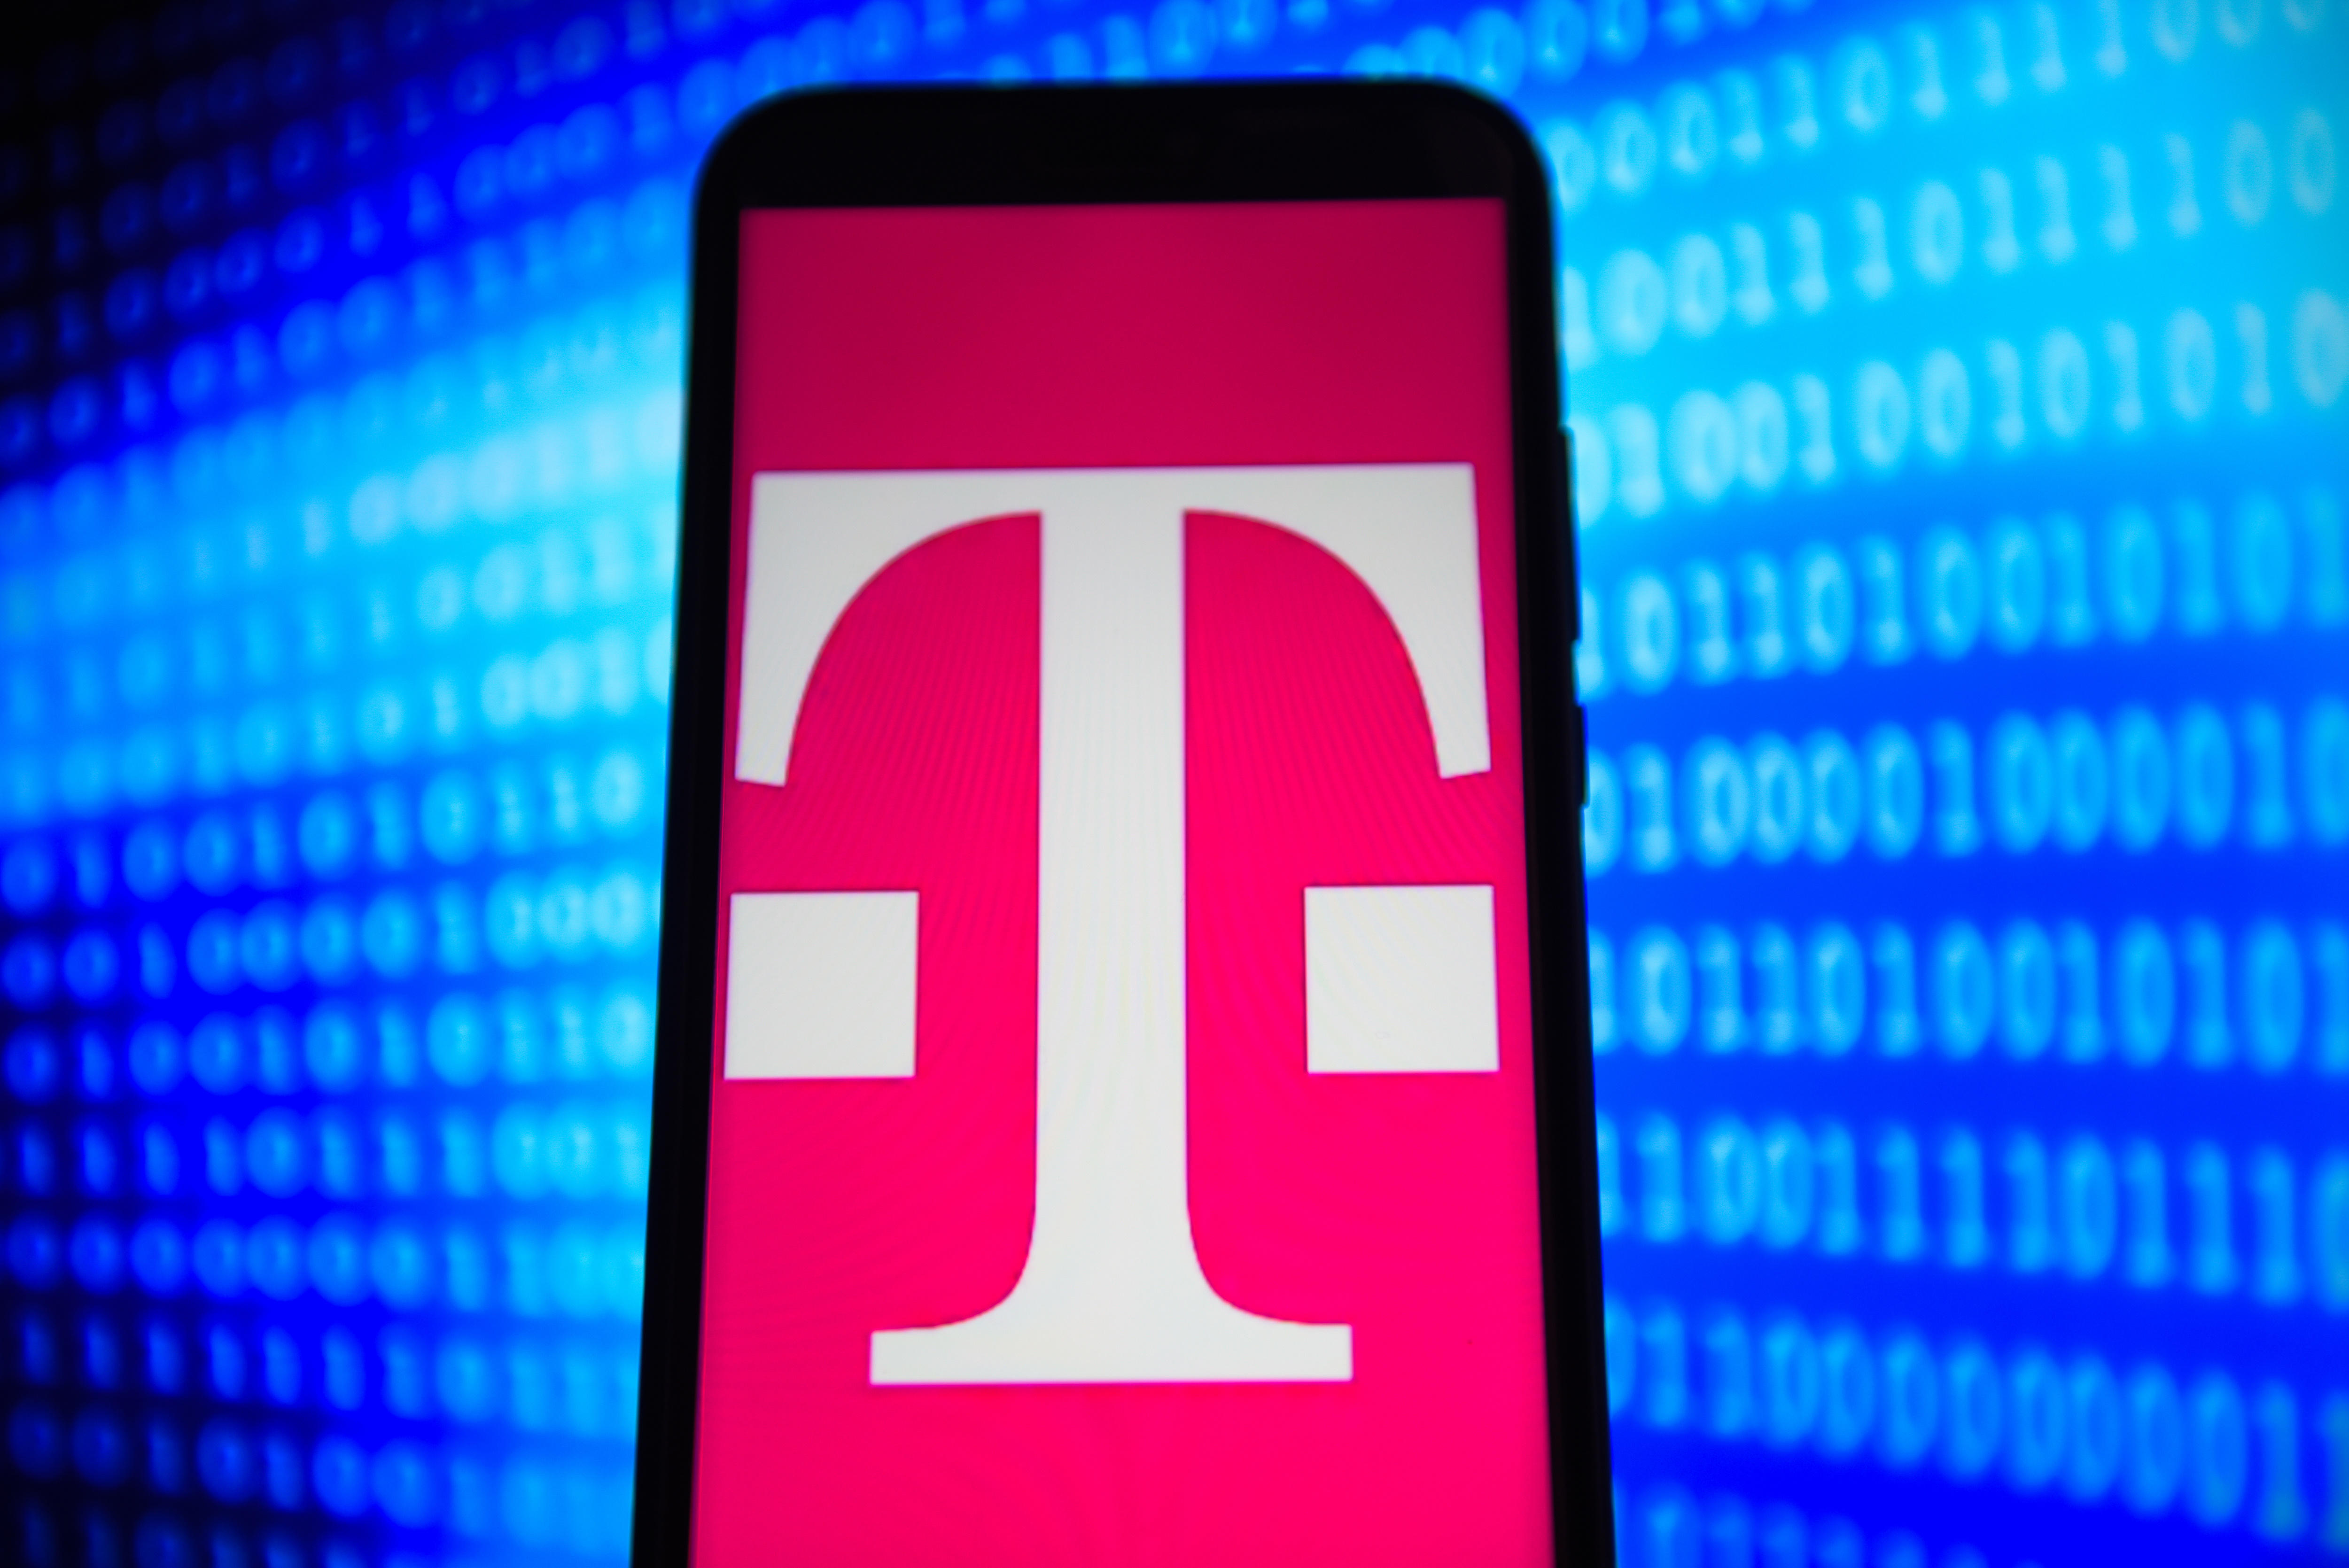 T mobile logo is seen on an android mobile phone